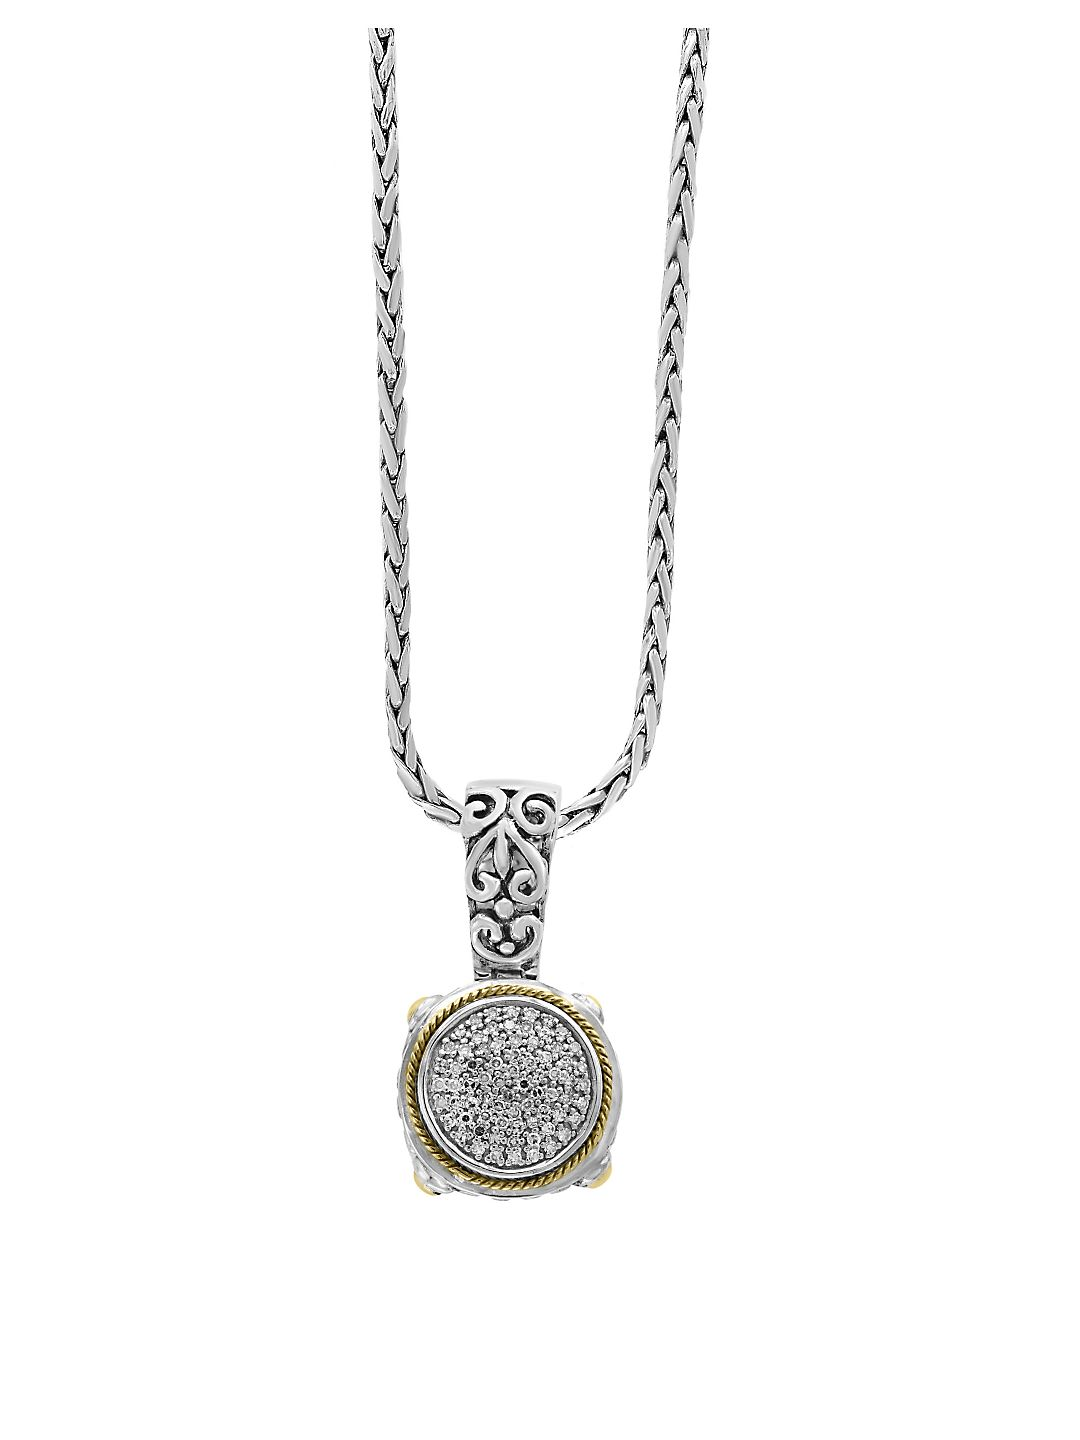 Diamond and Sterling Silver Pendant Necklace